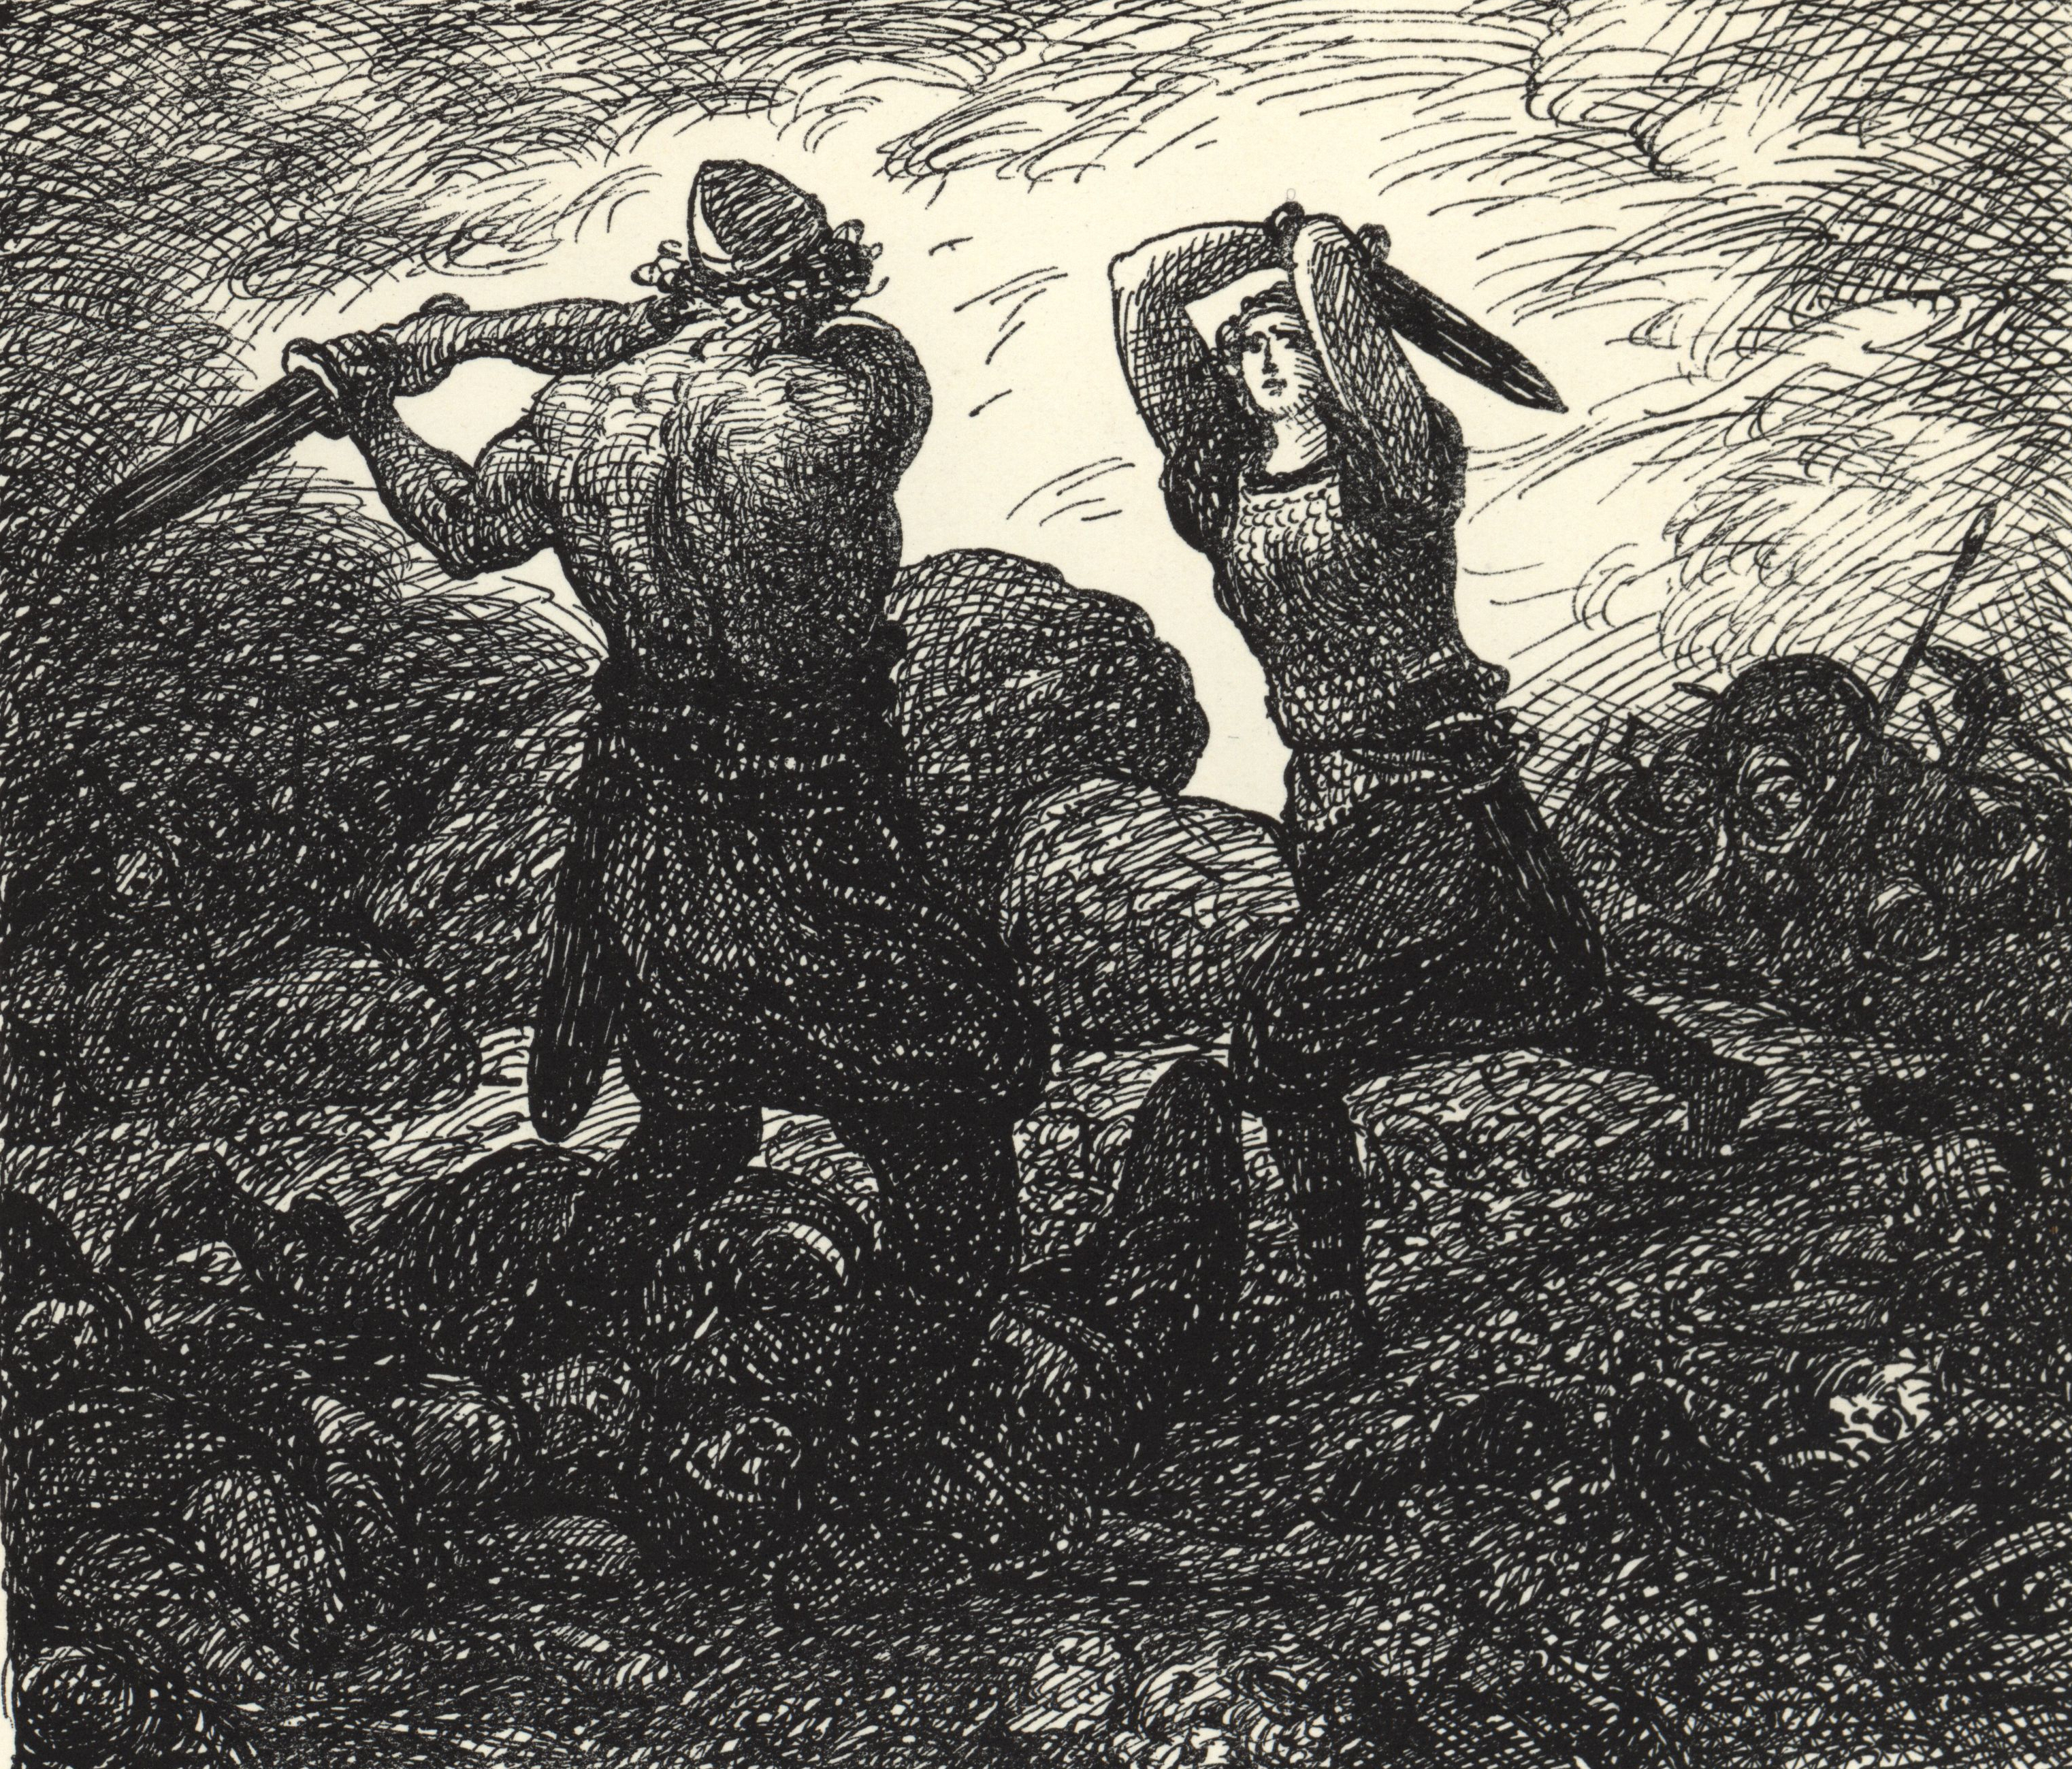 Starkaðr Fighting with Vébjörg